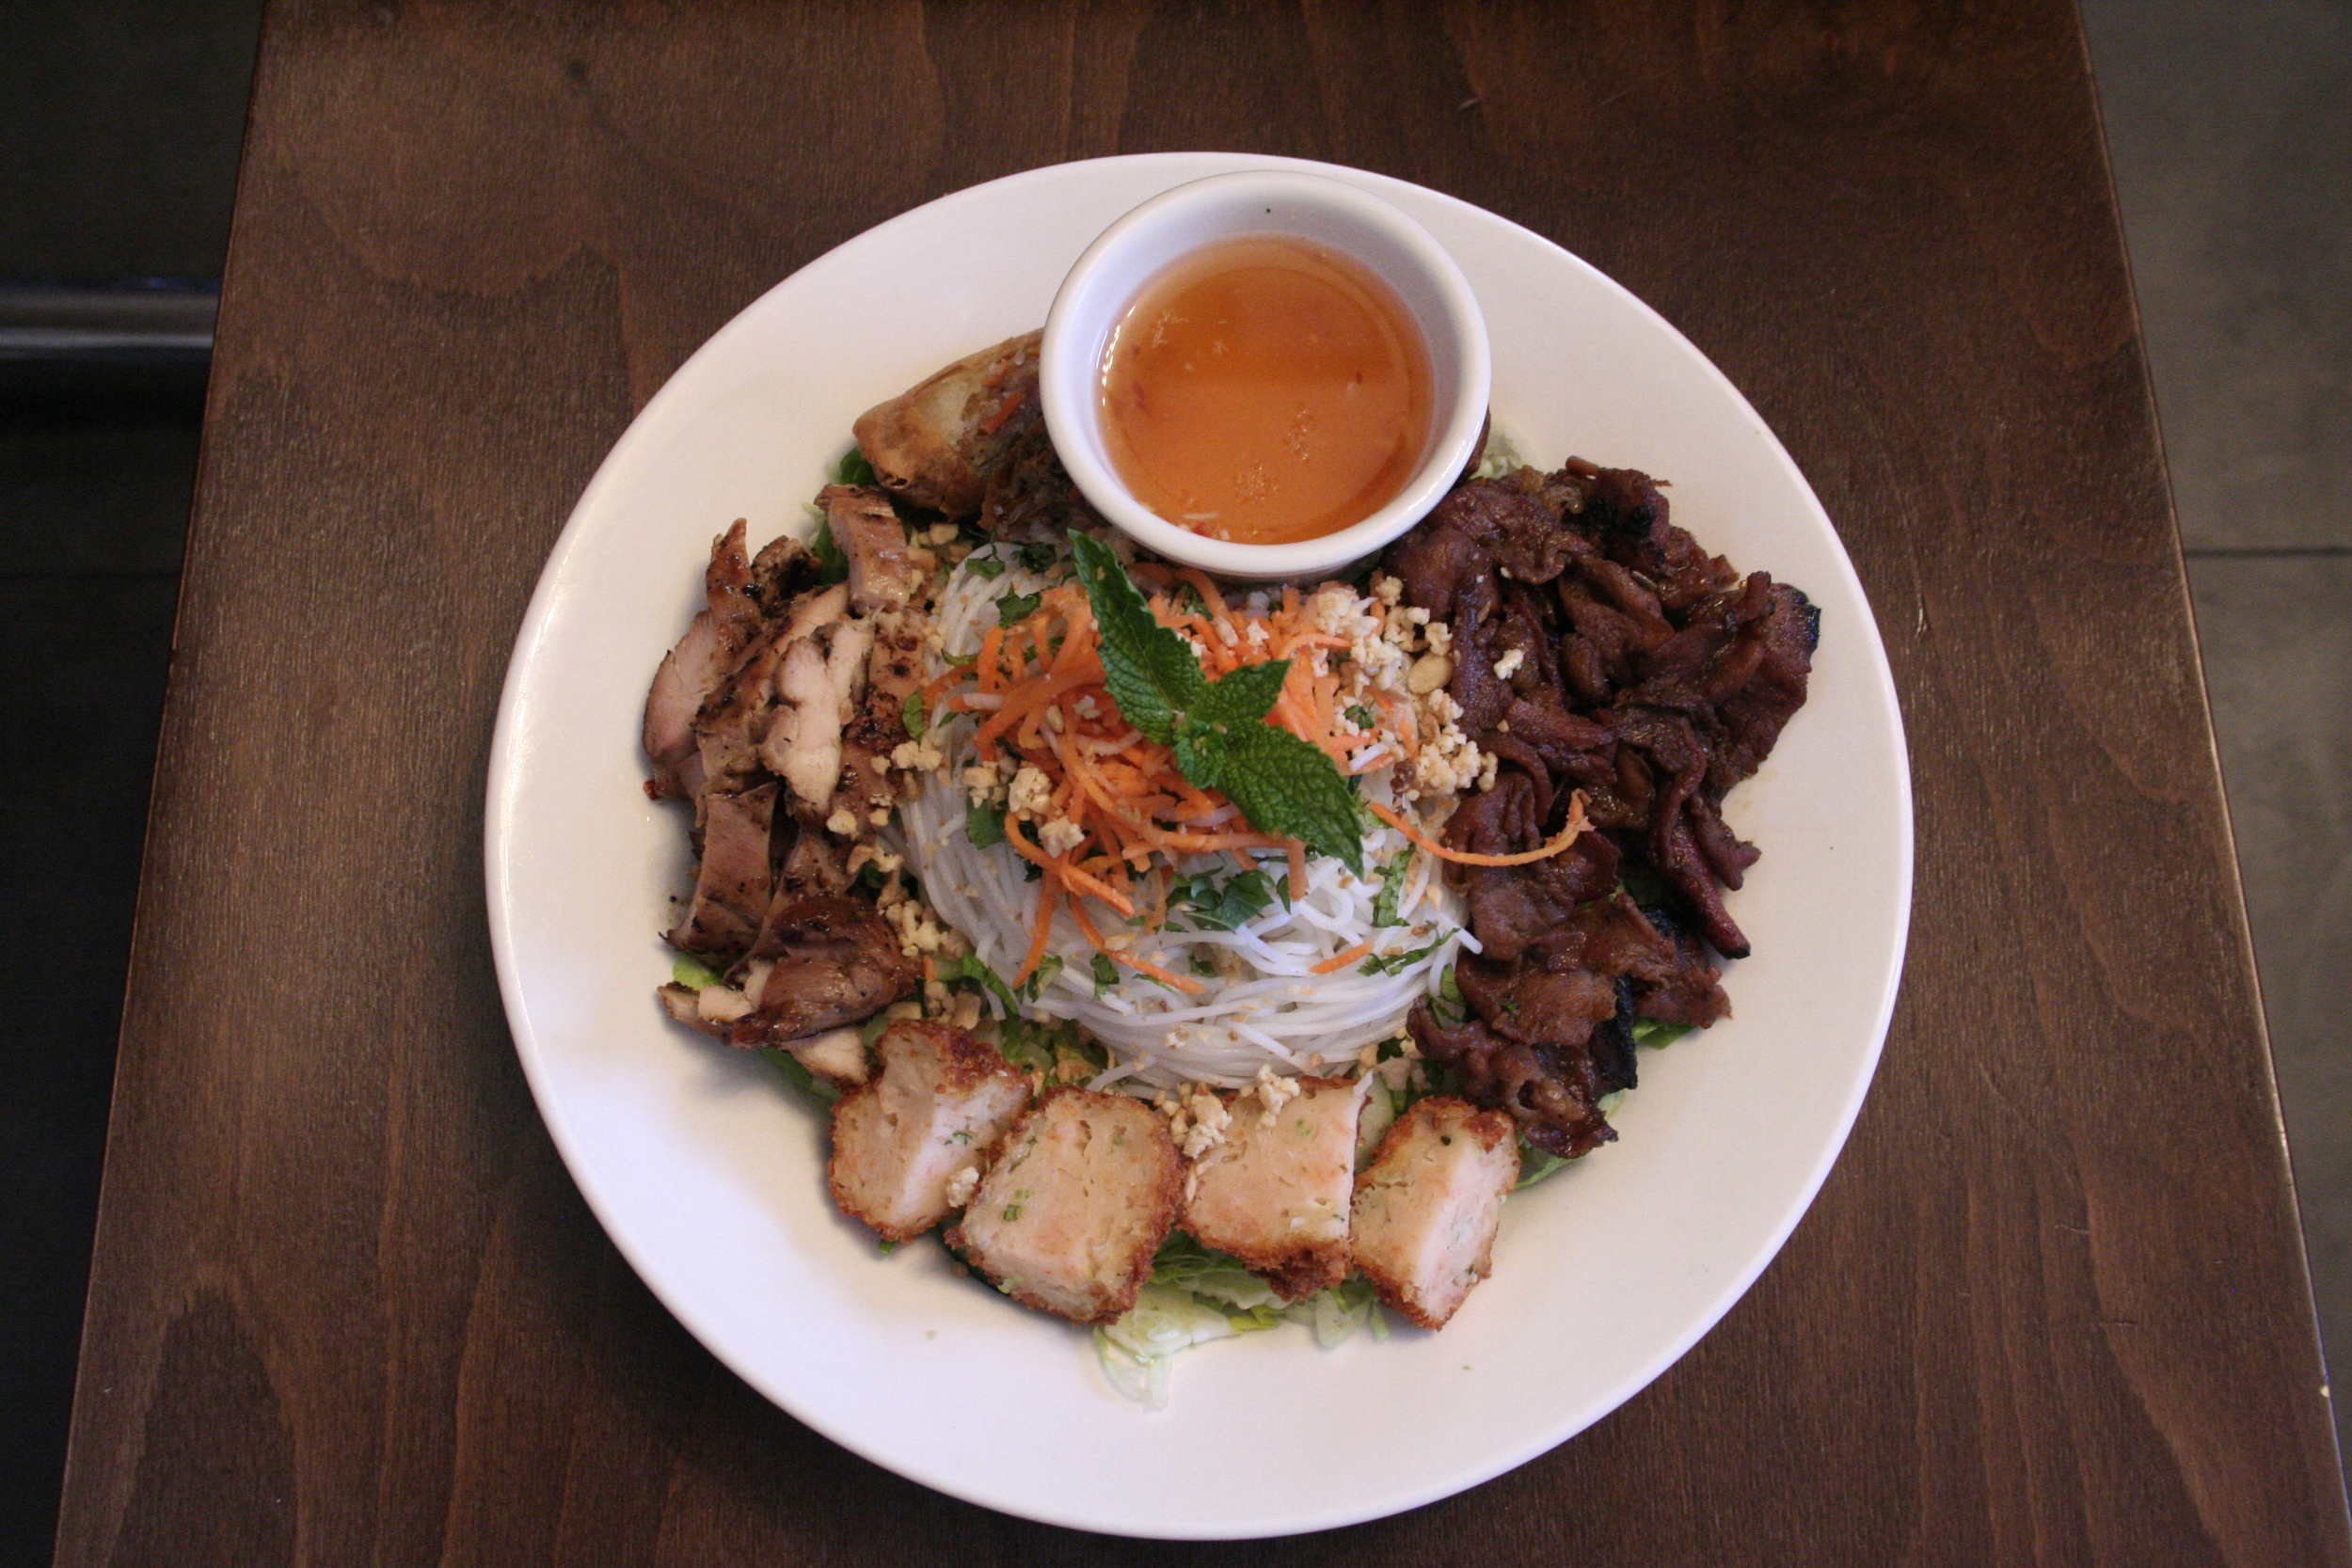 2: I got to go work on a photo shoot for an upcoming issue of the paper I work for, and we were shooting food from the local restaurant Namese. I got to eat this dish later.